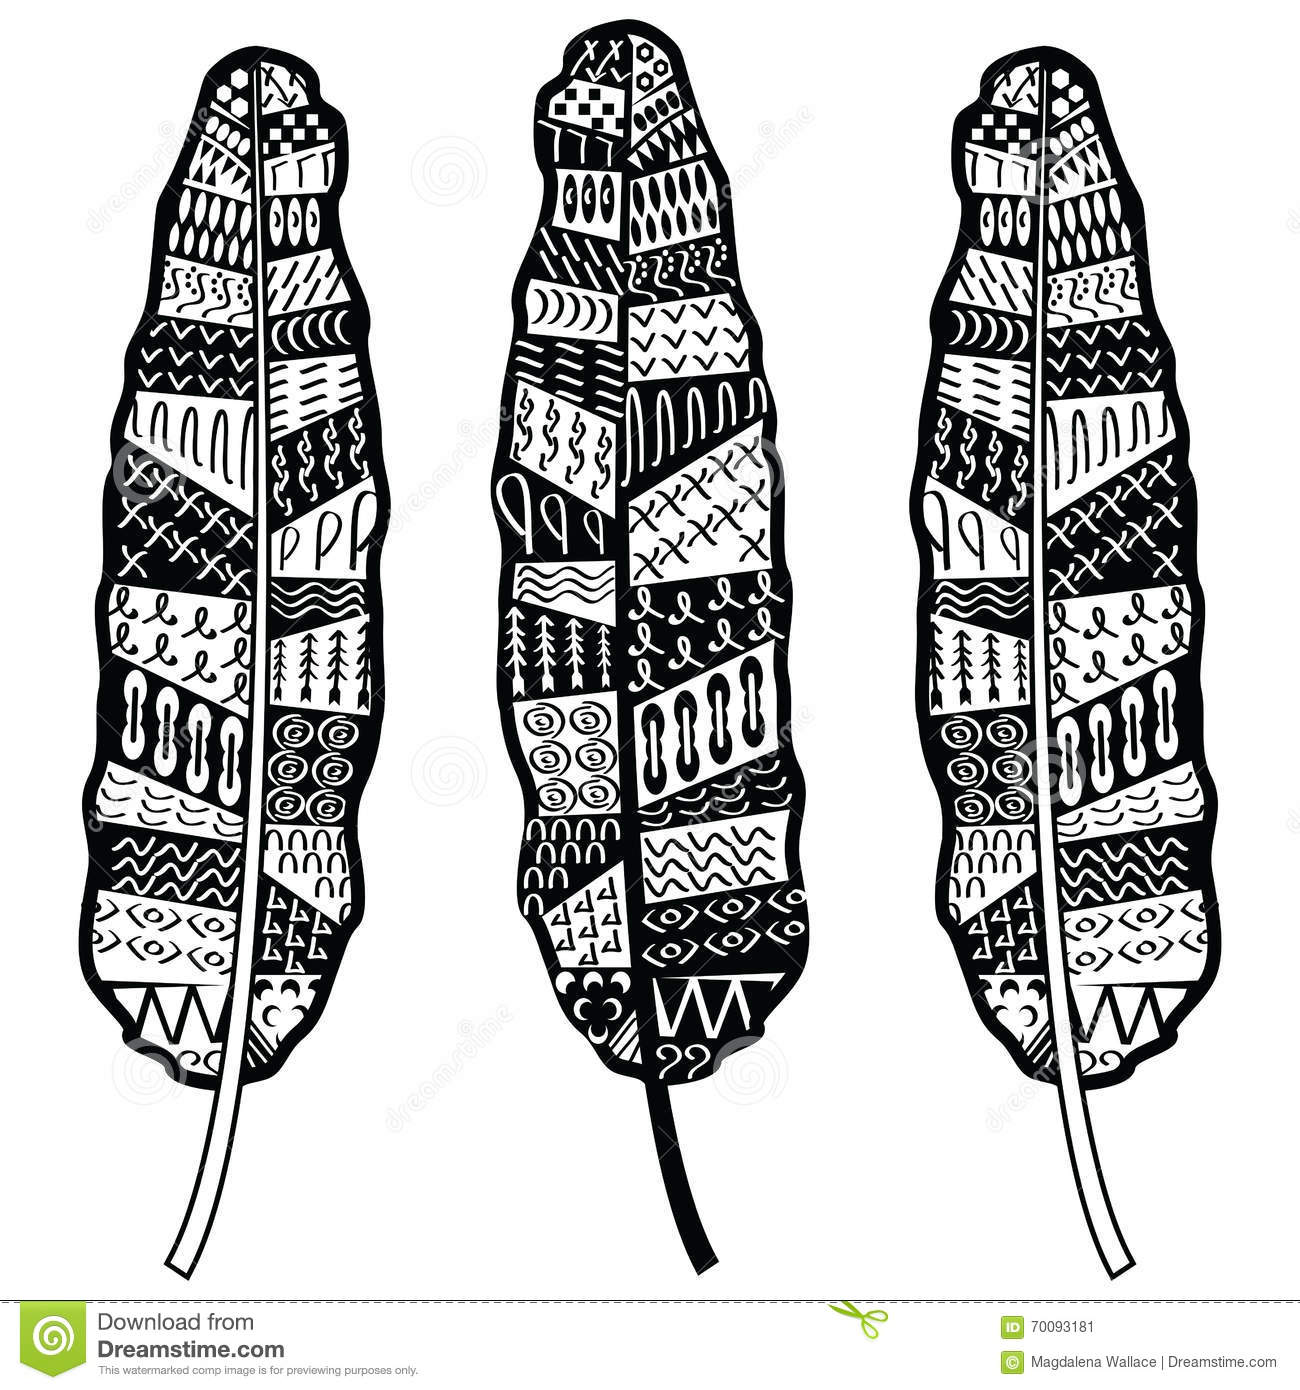 Native american ornaments - Aztec Zentangle Style Feathers Symbolizing Native American Culture In Black And White With Tribal Ornaments Stock